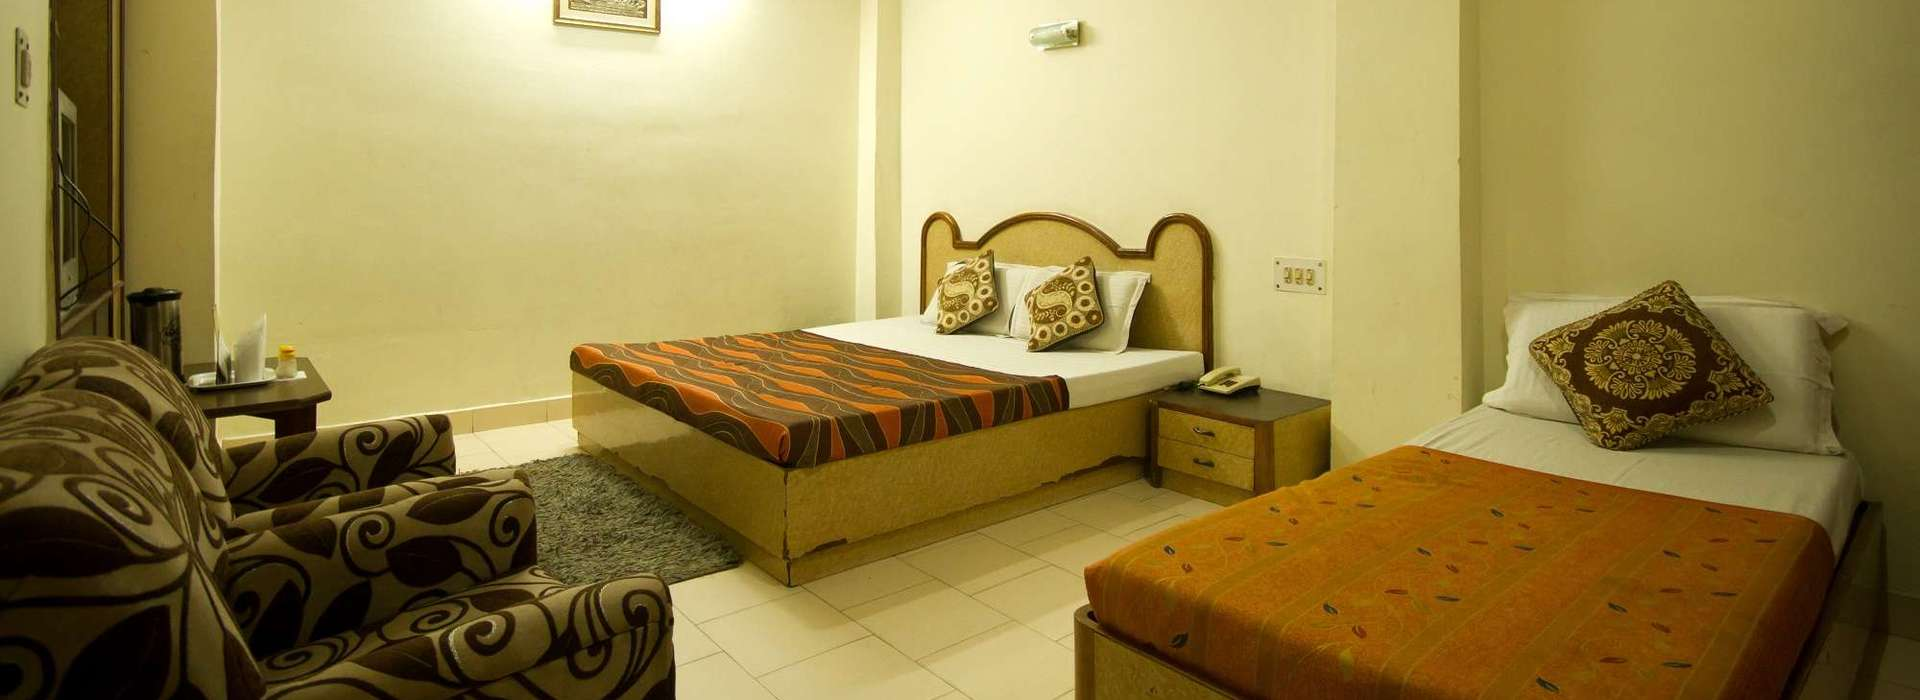 Deluxe Room at Woodland Deluxe Hotel in Paharganj